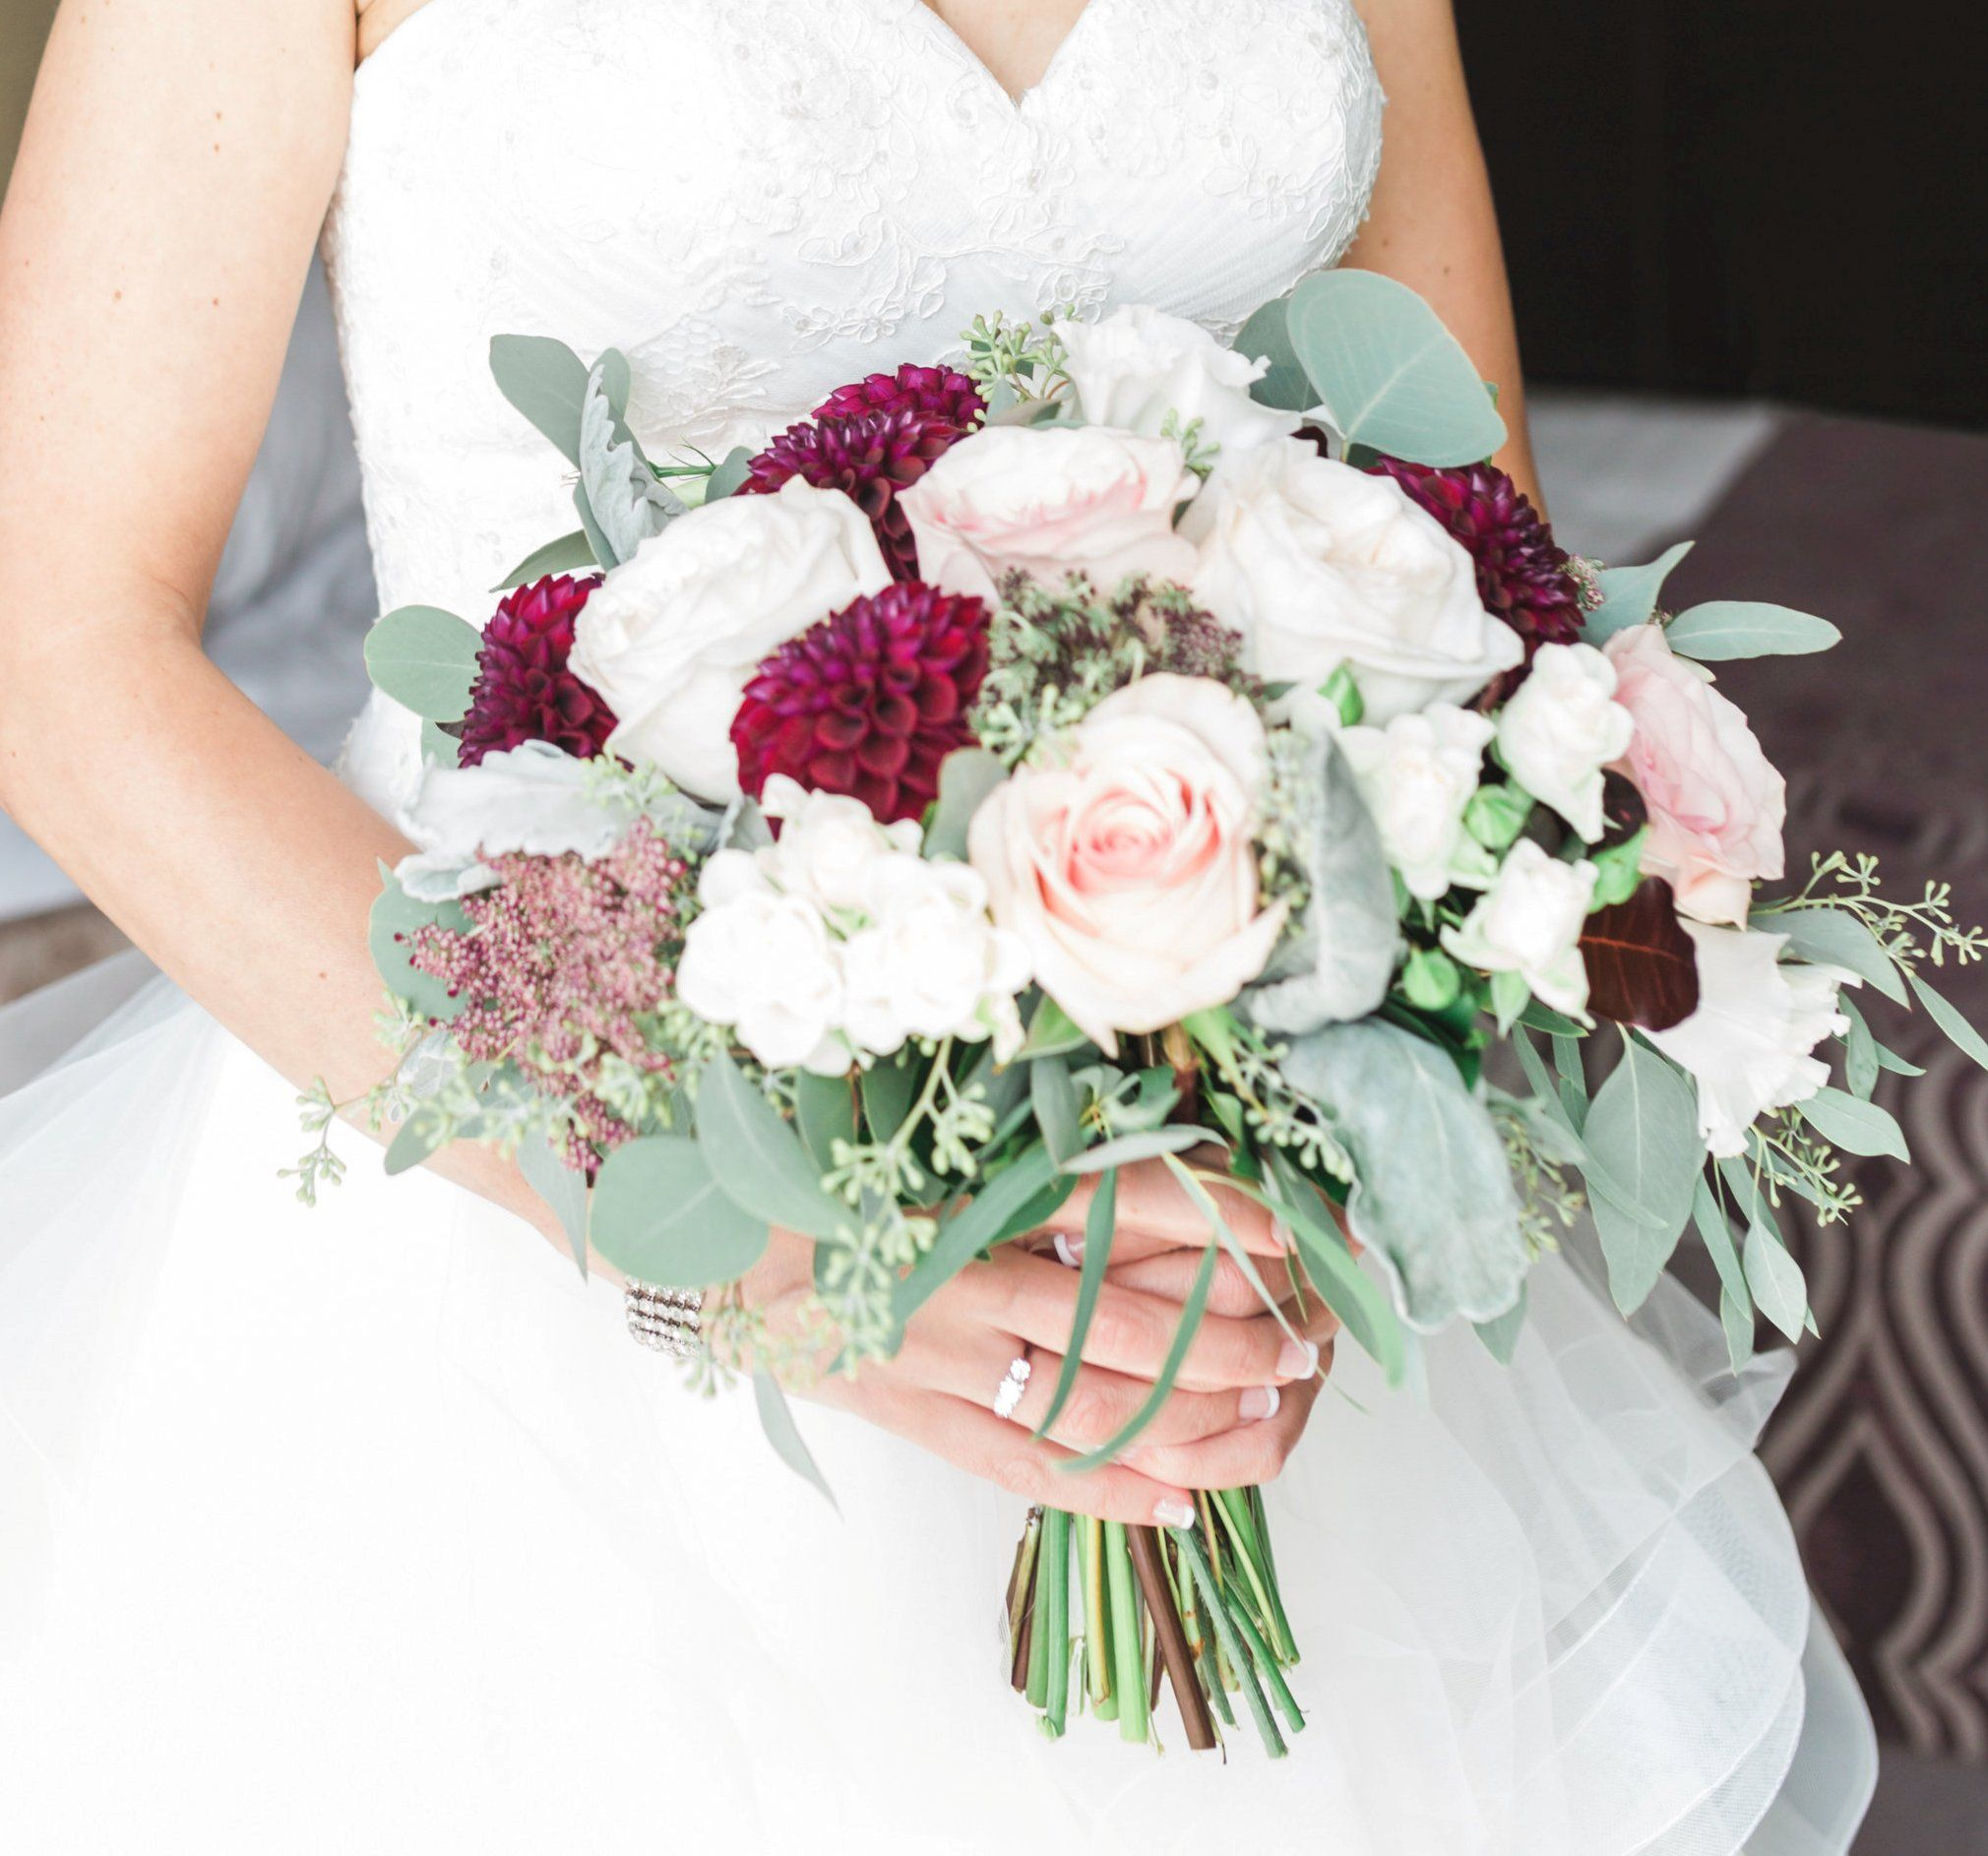 Wedding And Flowers: Blush And Burgundy Bridal Bouquet With Roses, Dahlias, And